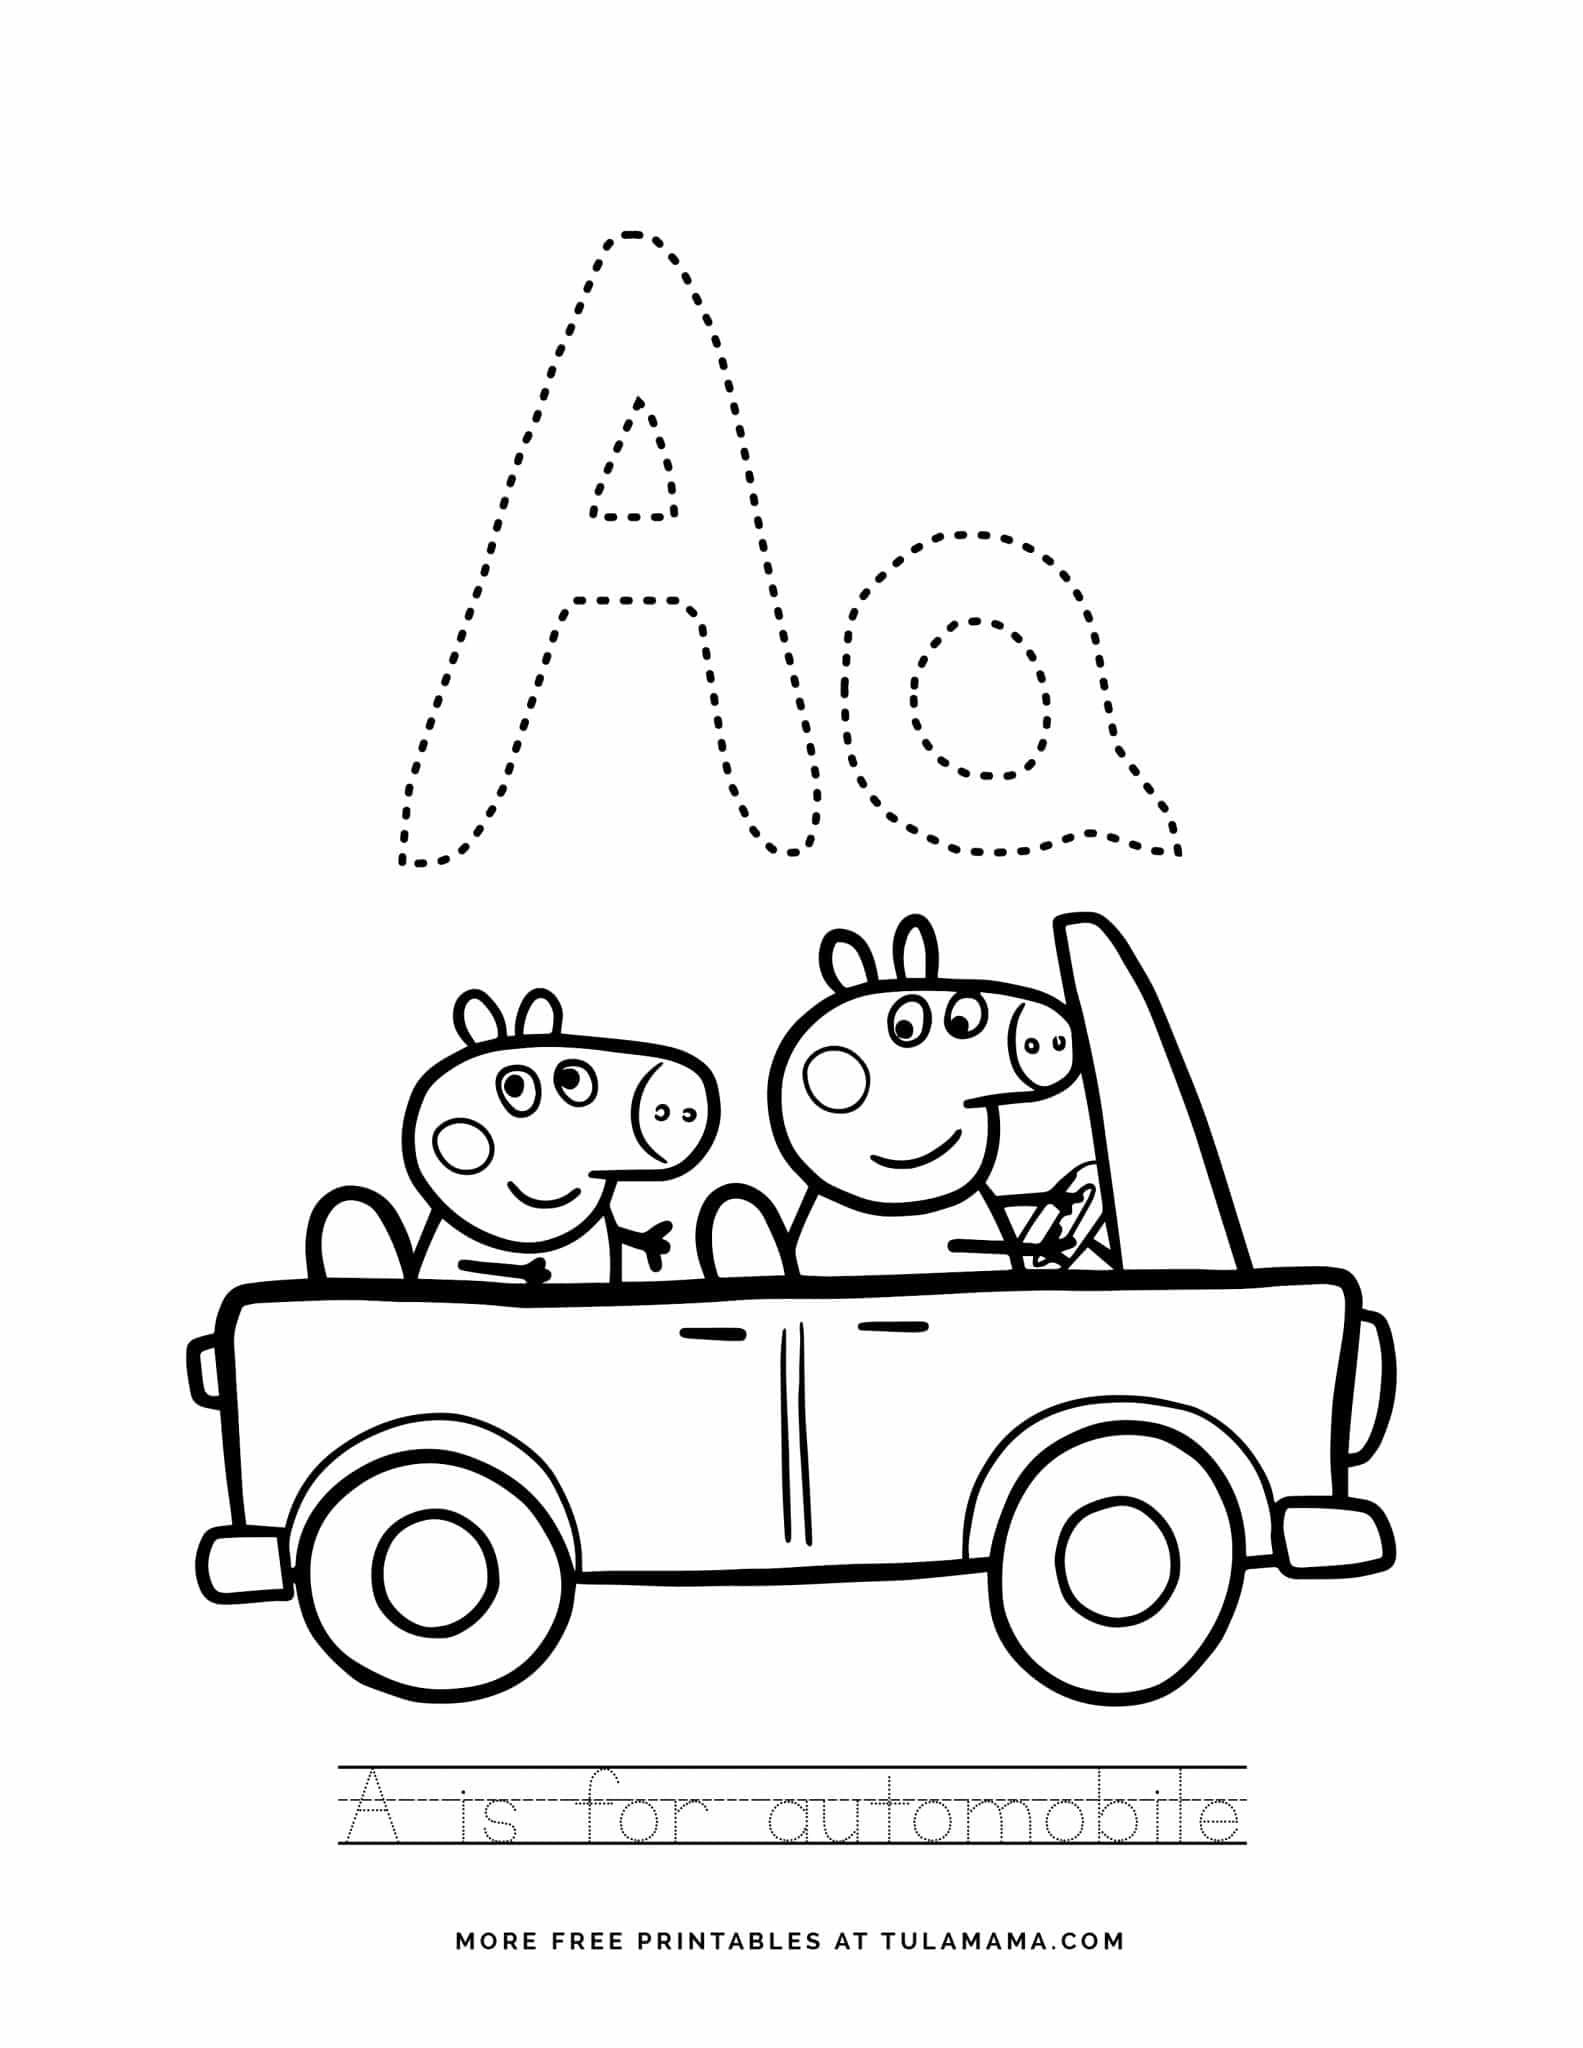 Disney Alphabet Letters Tag: Incredible Alphabet Coloring Pages. 33  Stunning Alphabet Coloring Picture Ideas. | 2048x1583